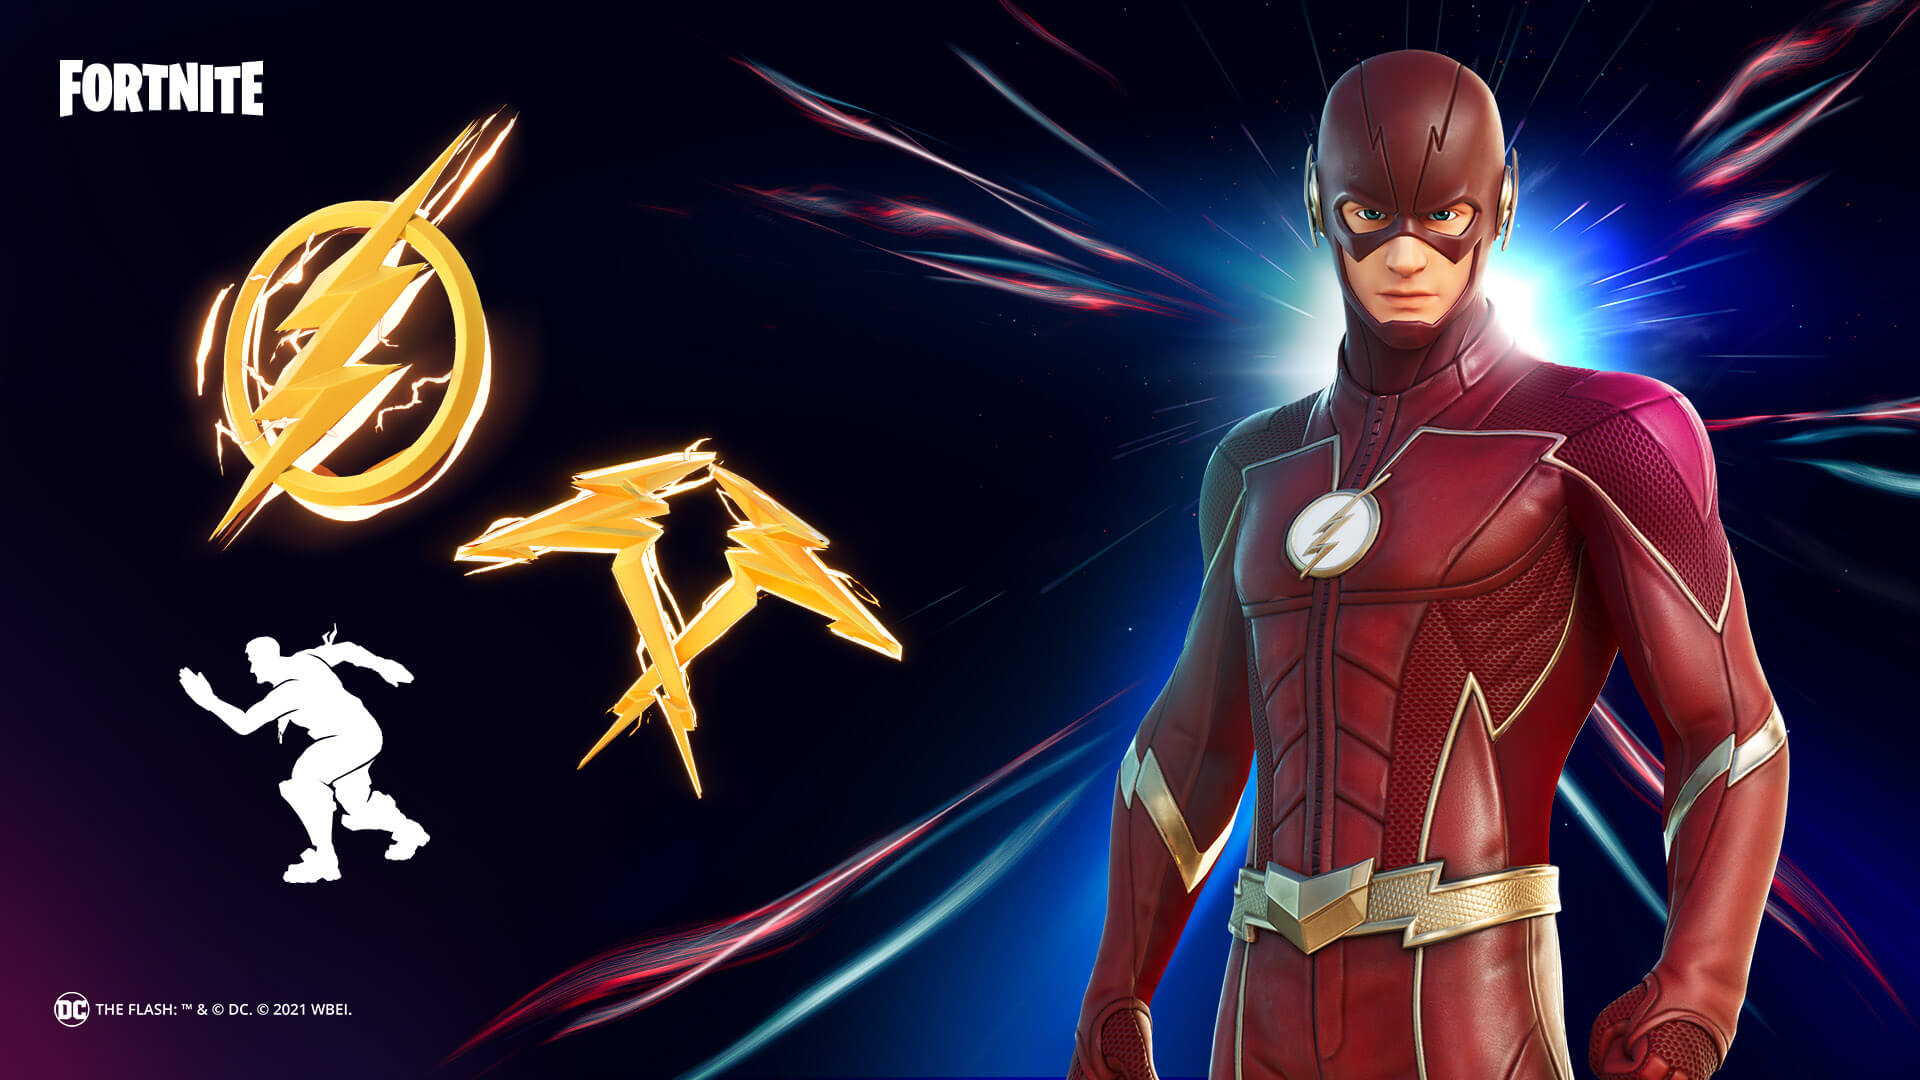 DC's The Flash Bundle Fortnite